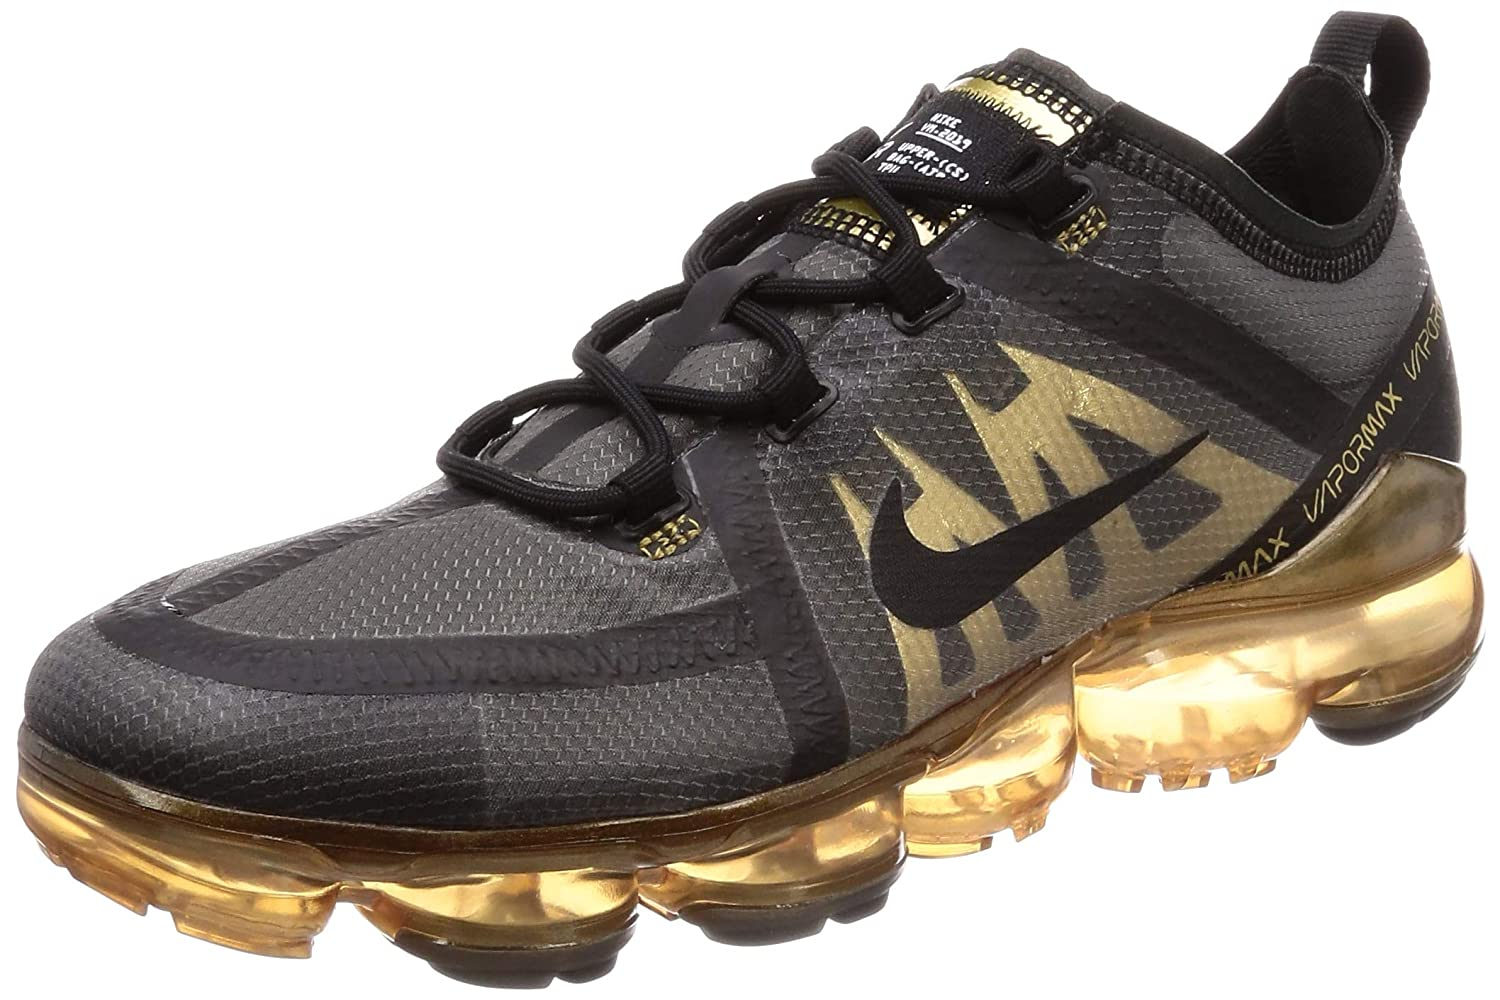 finest selection da461 84e5c Nike Men's Air Vapormax 2019 Black/Black/Metallic Gold Mesh Running Shoes 9  M US